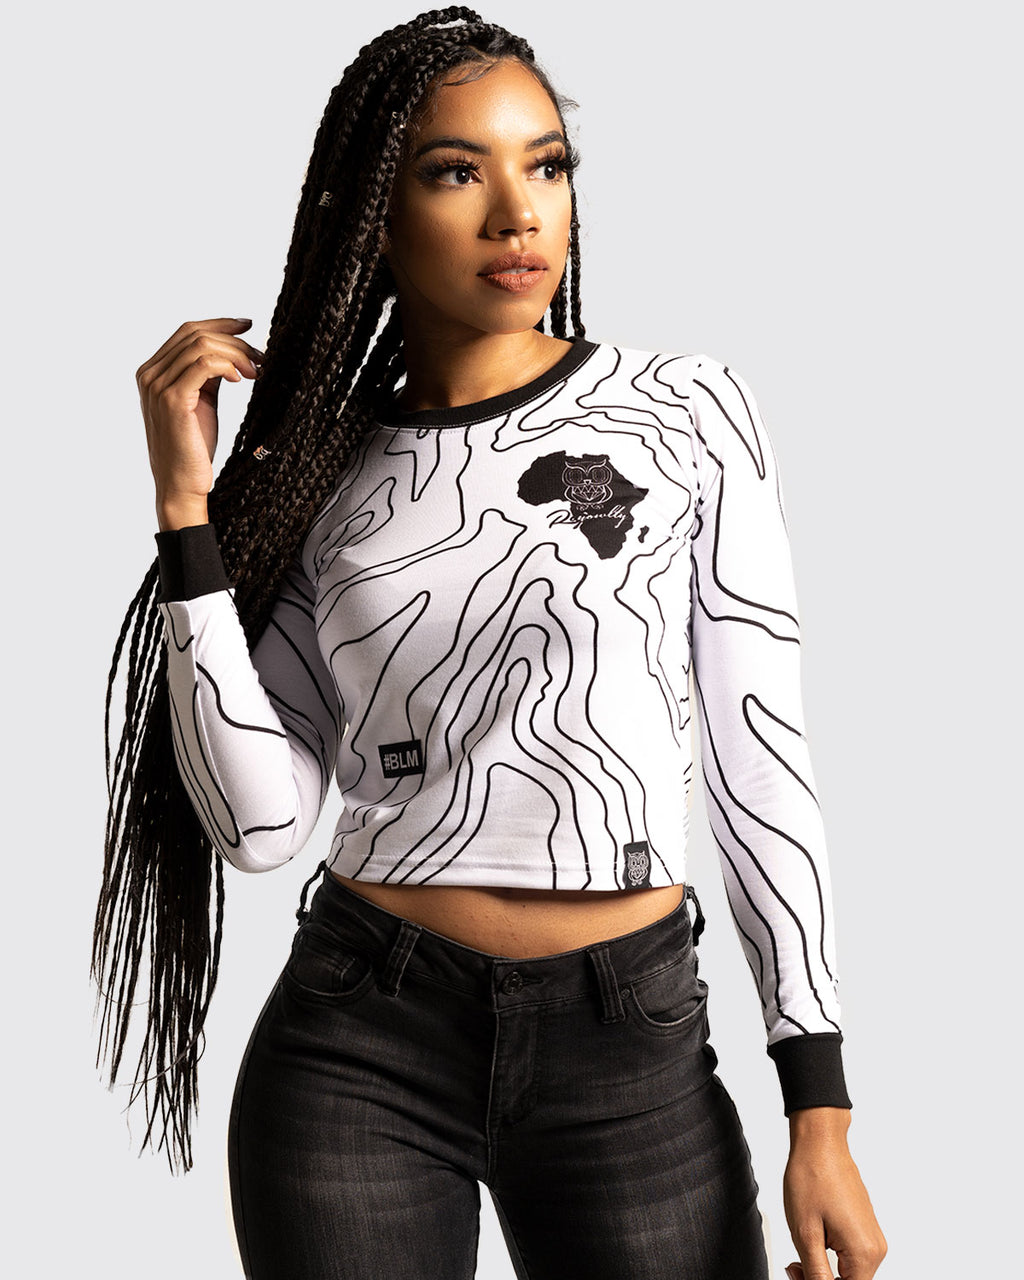 The Ancients Crop top (Black Lives Matter)-White